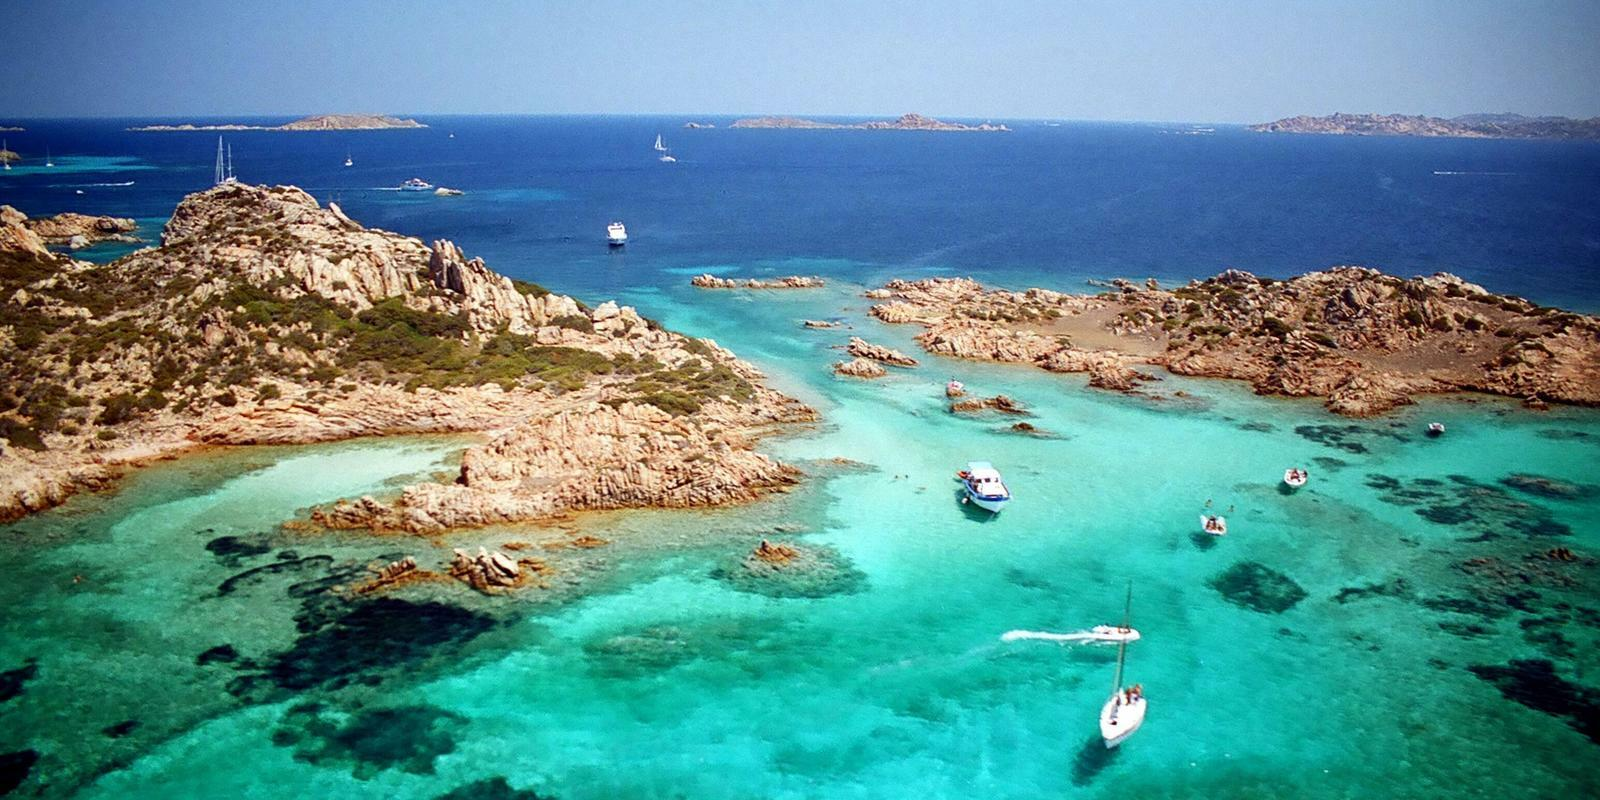 August in the paradise of La Maddalena and southern Corsica